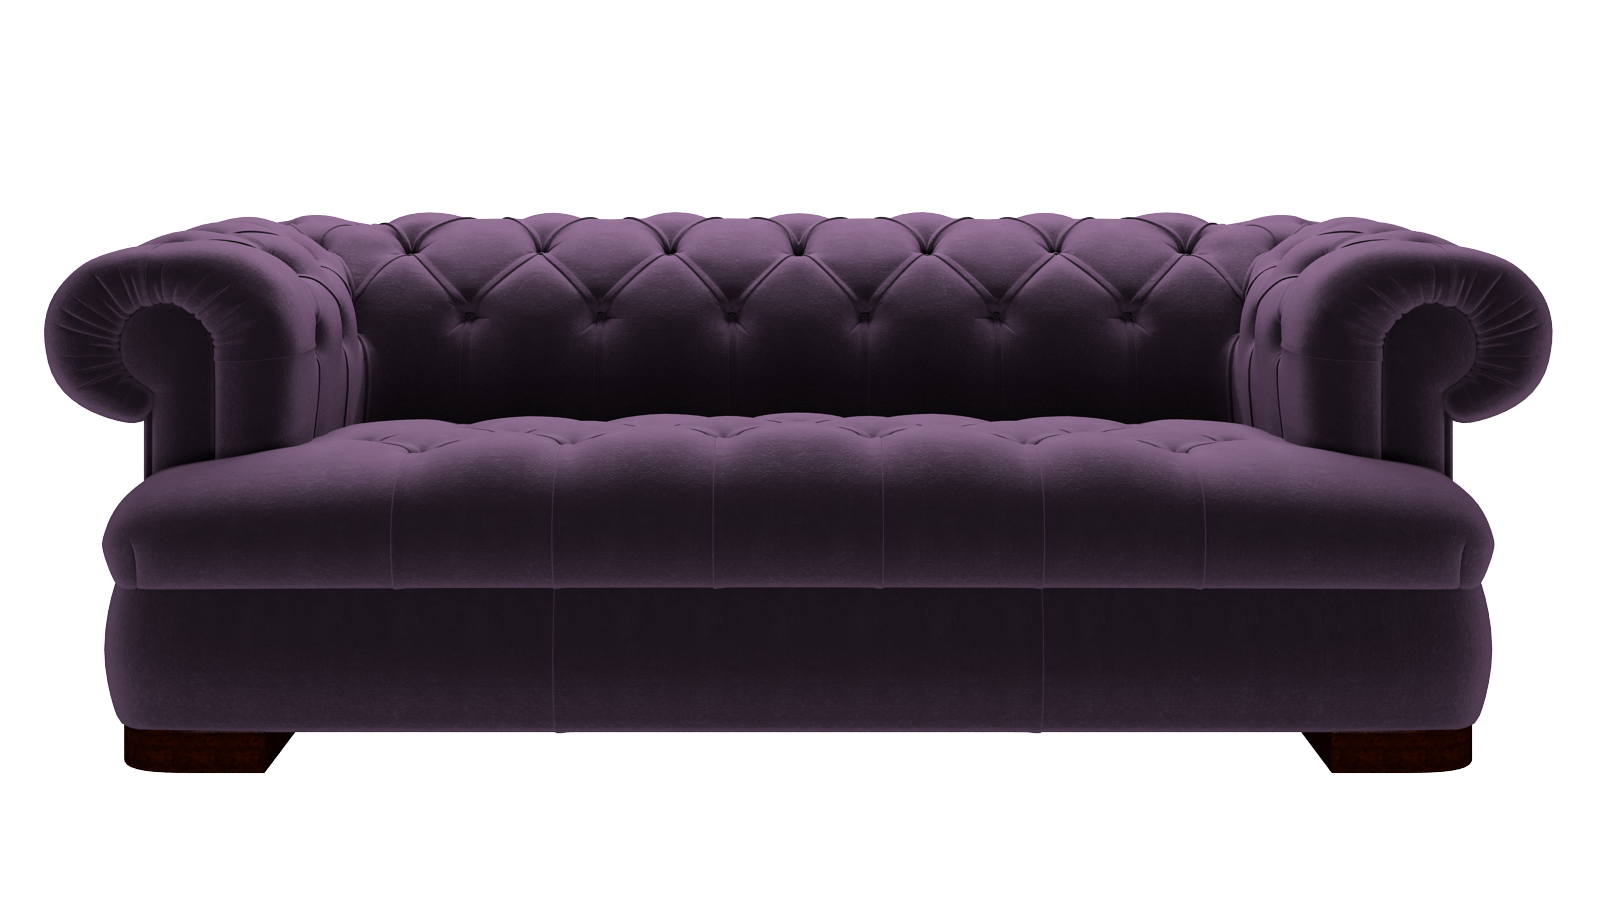 Velvet is a great alternative to leather if you want your chesterfield sofa to have that elegant yet luxurious look the beauty of a velvet sofa is simply